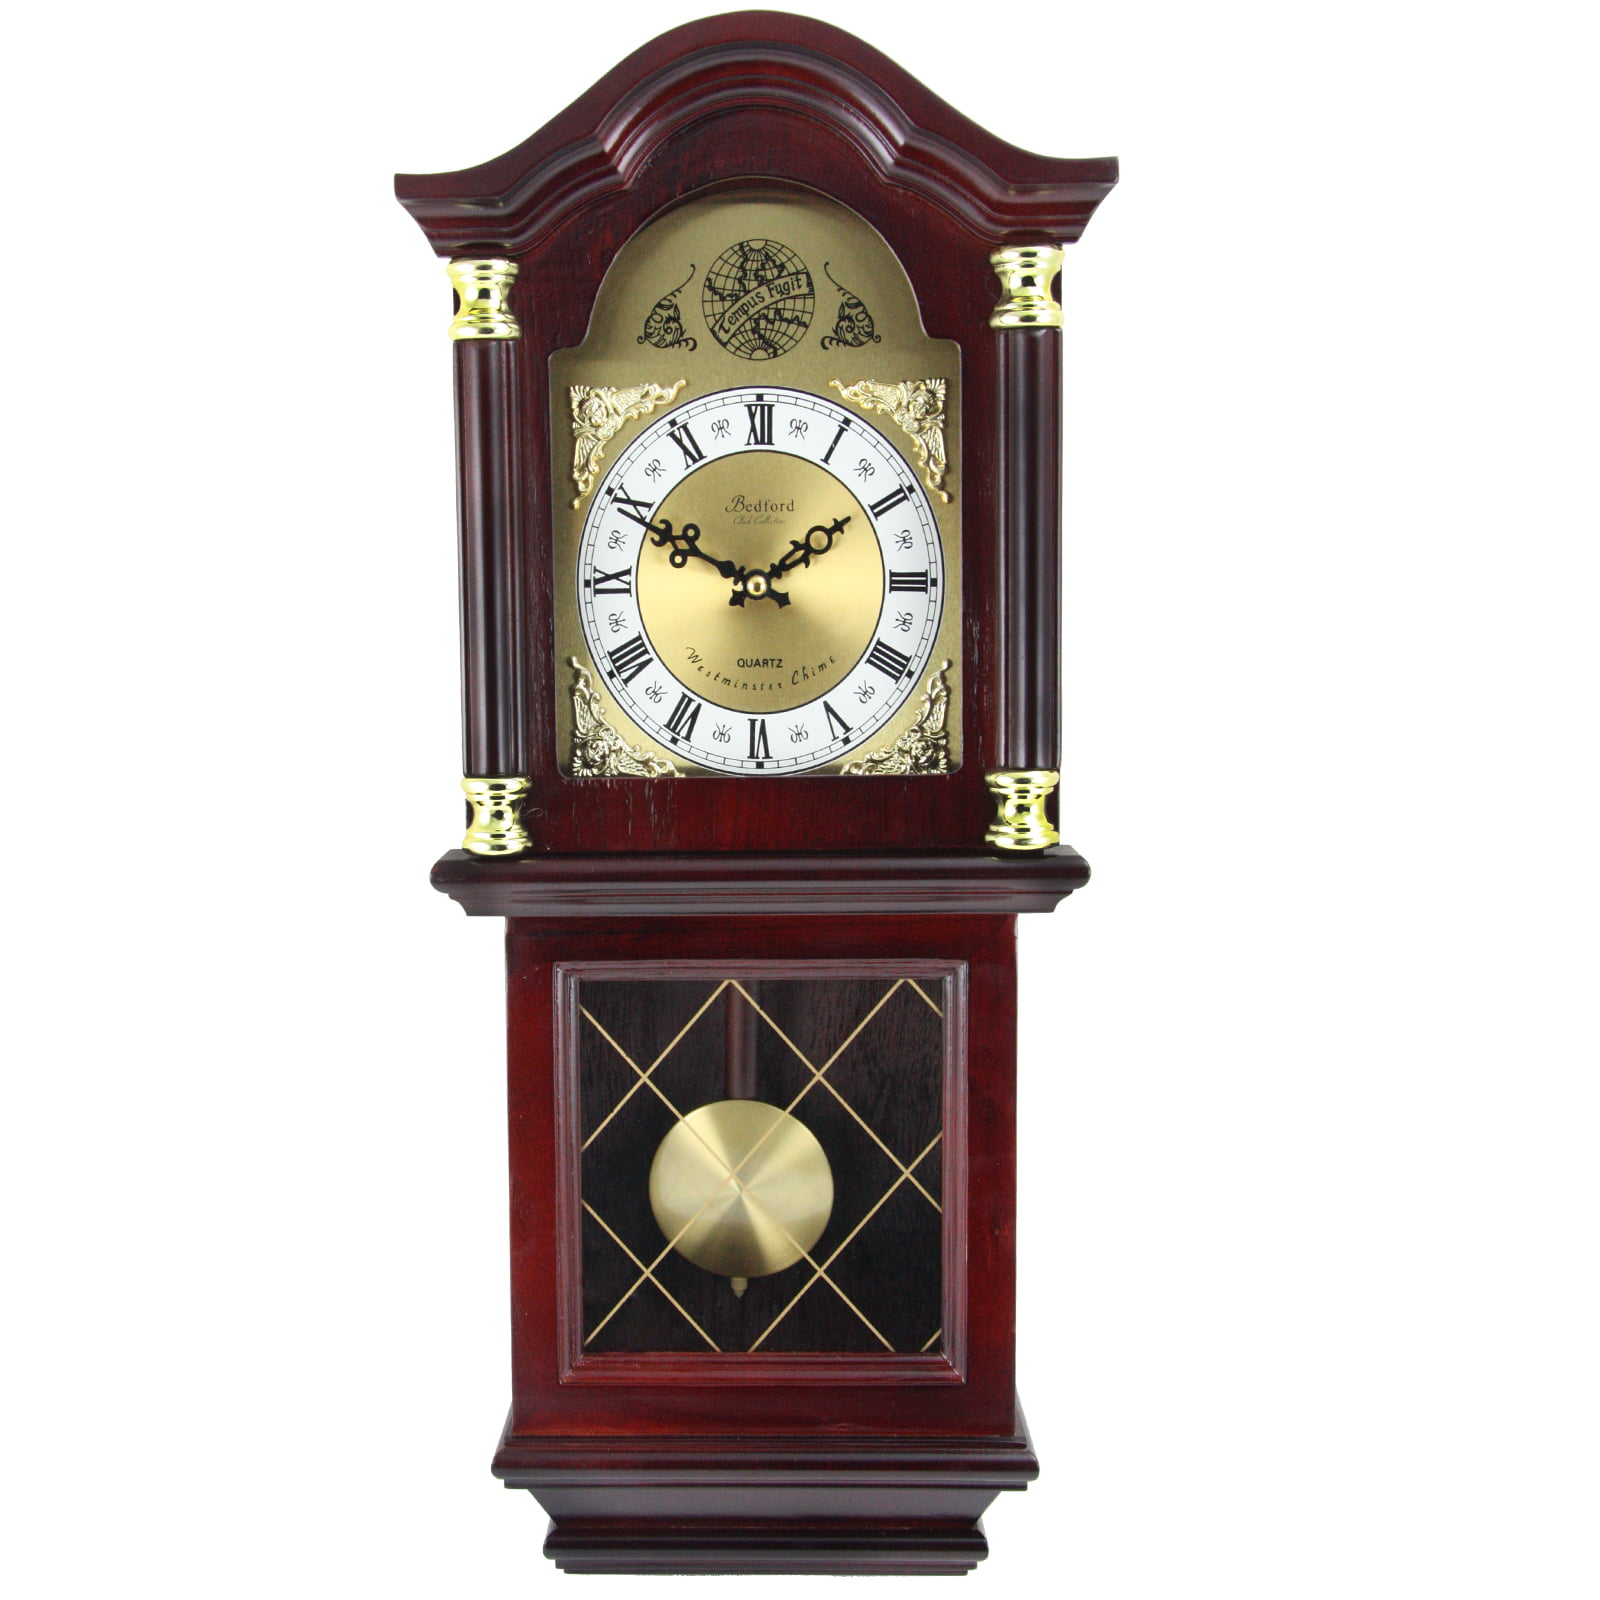 "Bedford Clock Collection 26"" Antique Mahogany Cherry Oak Chiming Wall Clock with... by Supplier Generic"